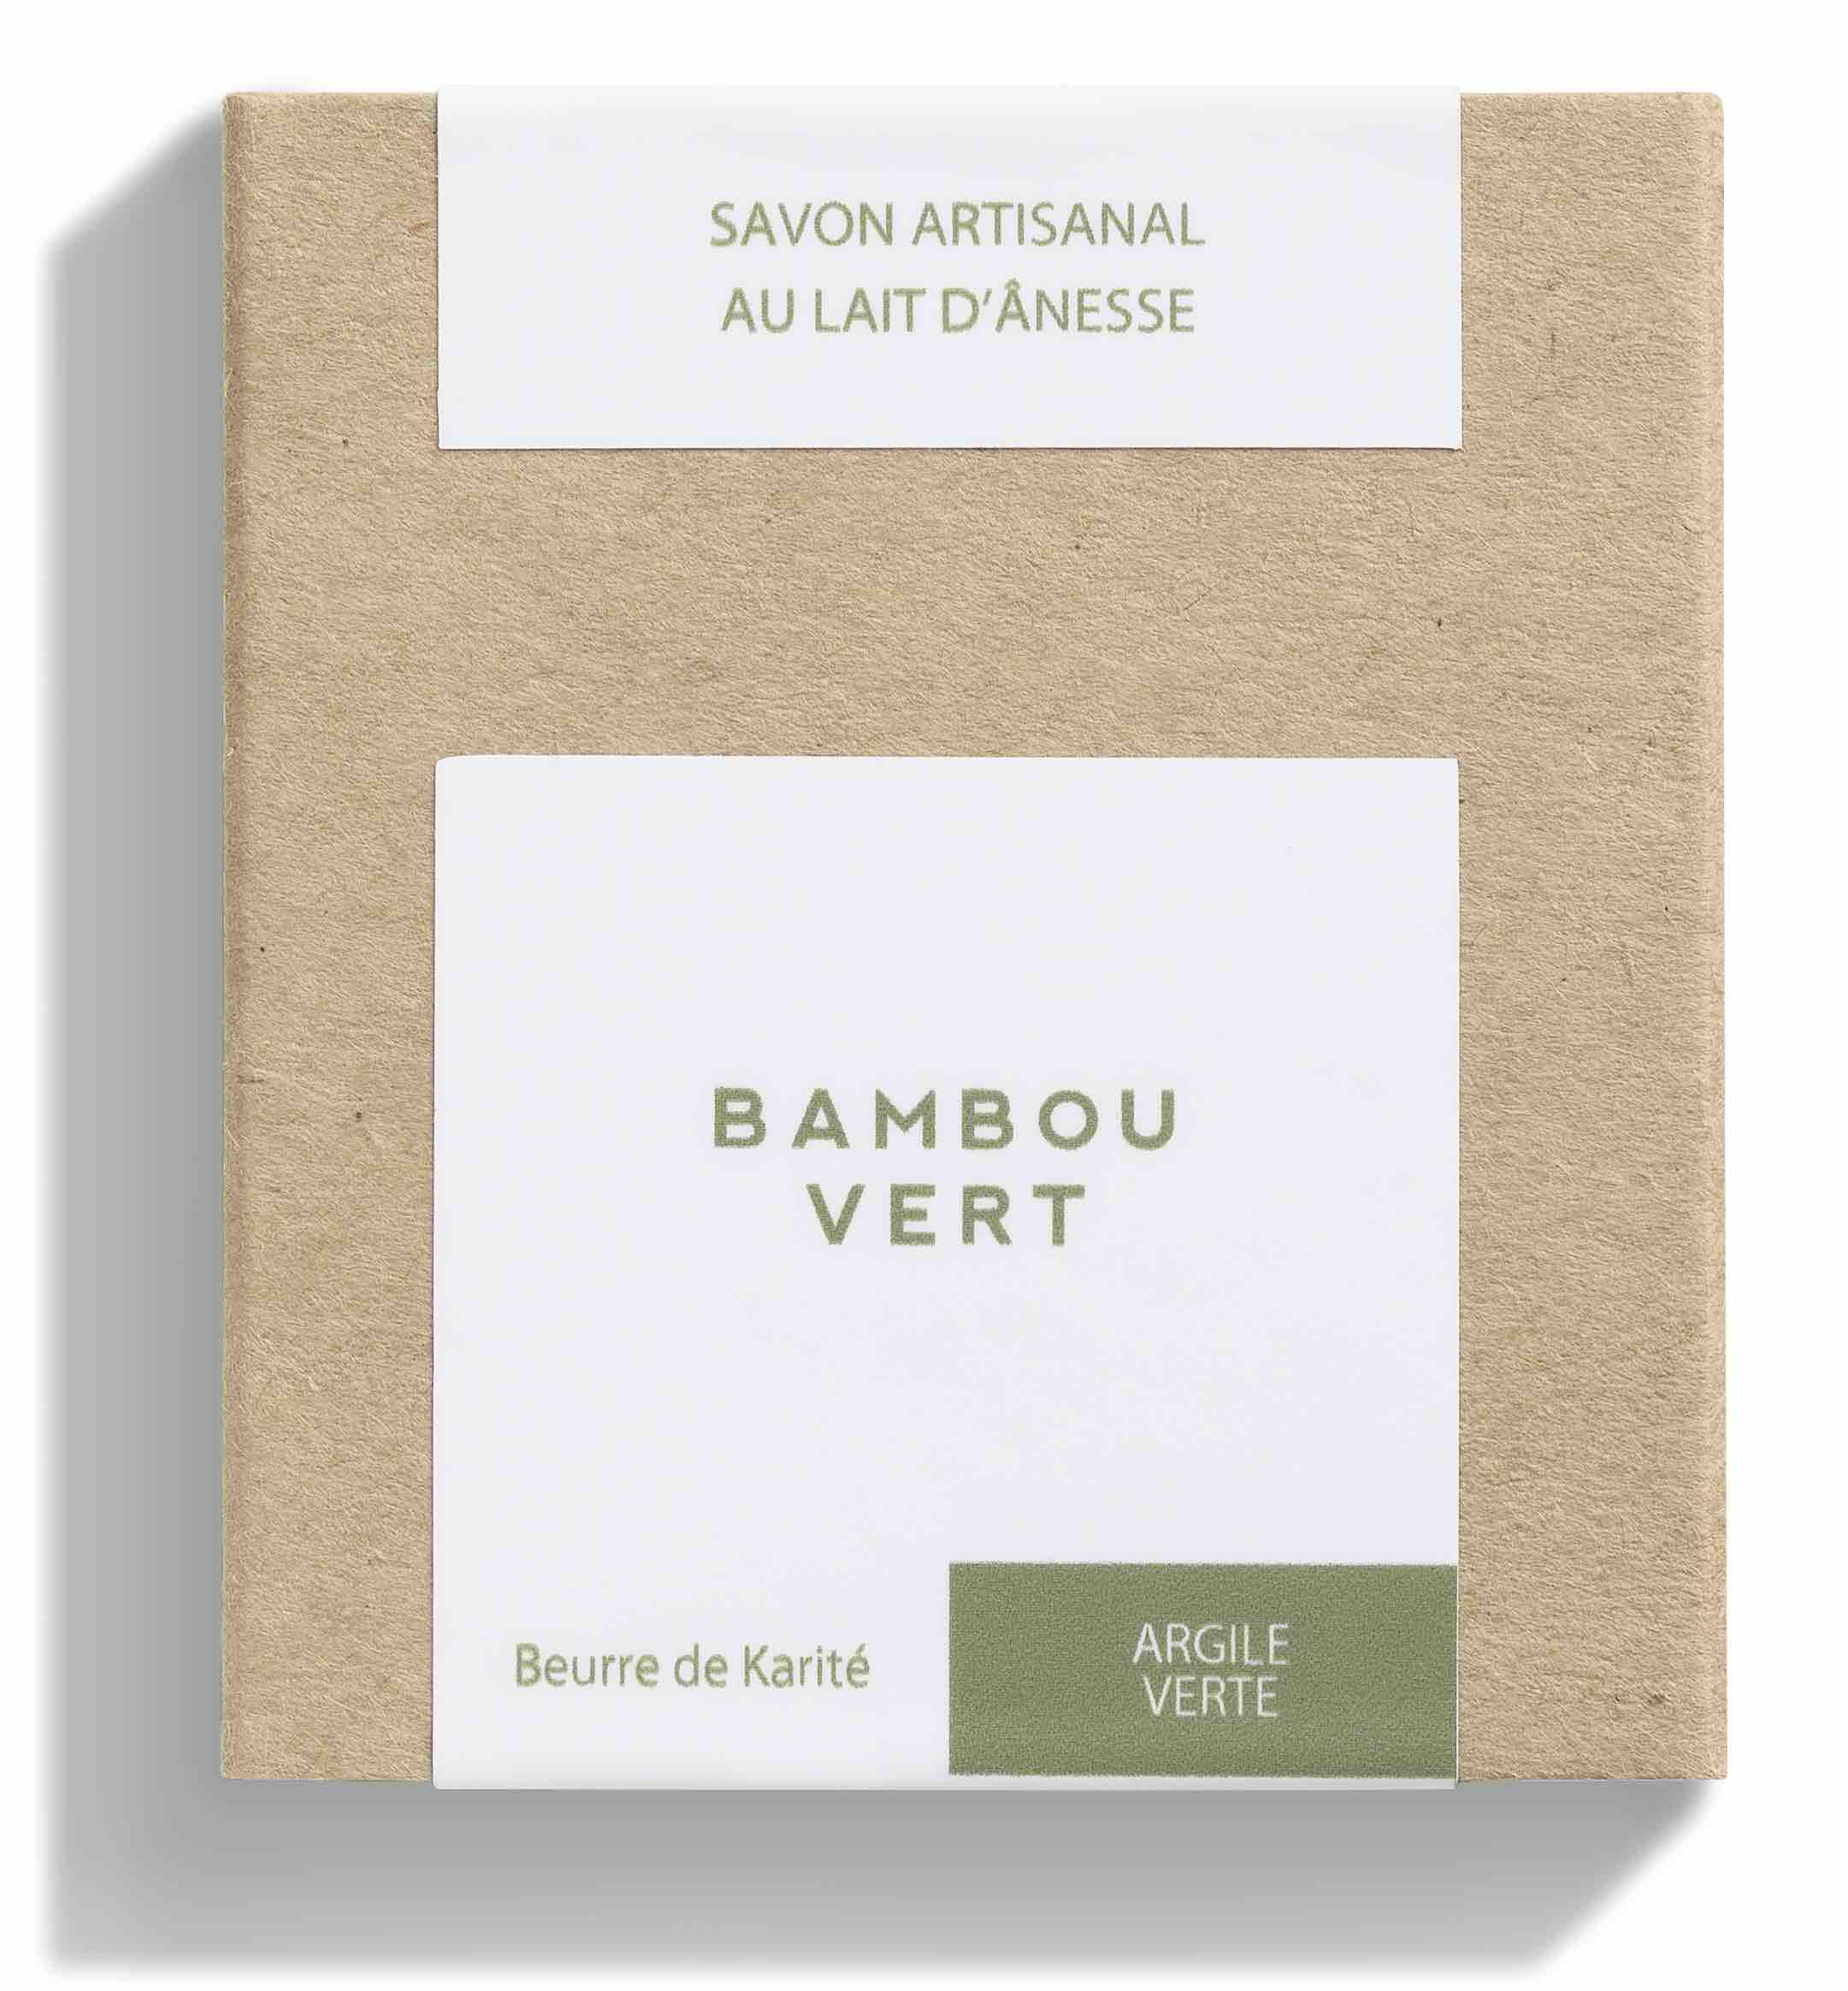 Volume France - Artisan Soaps Made from Donkey Milk